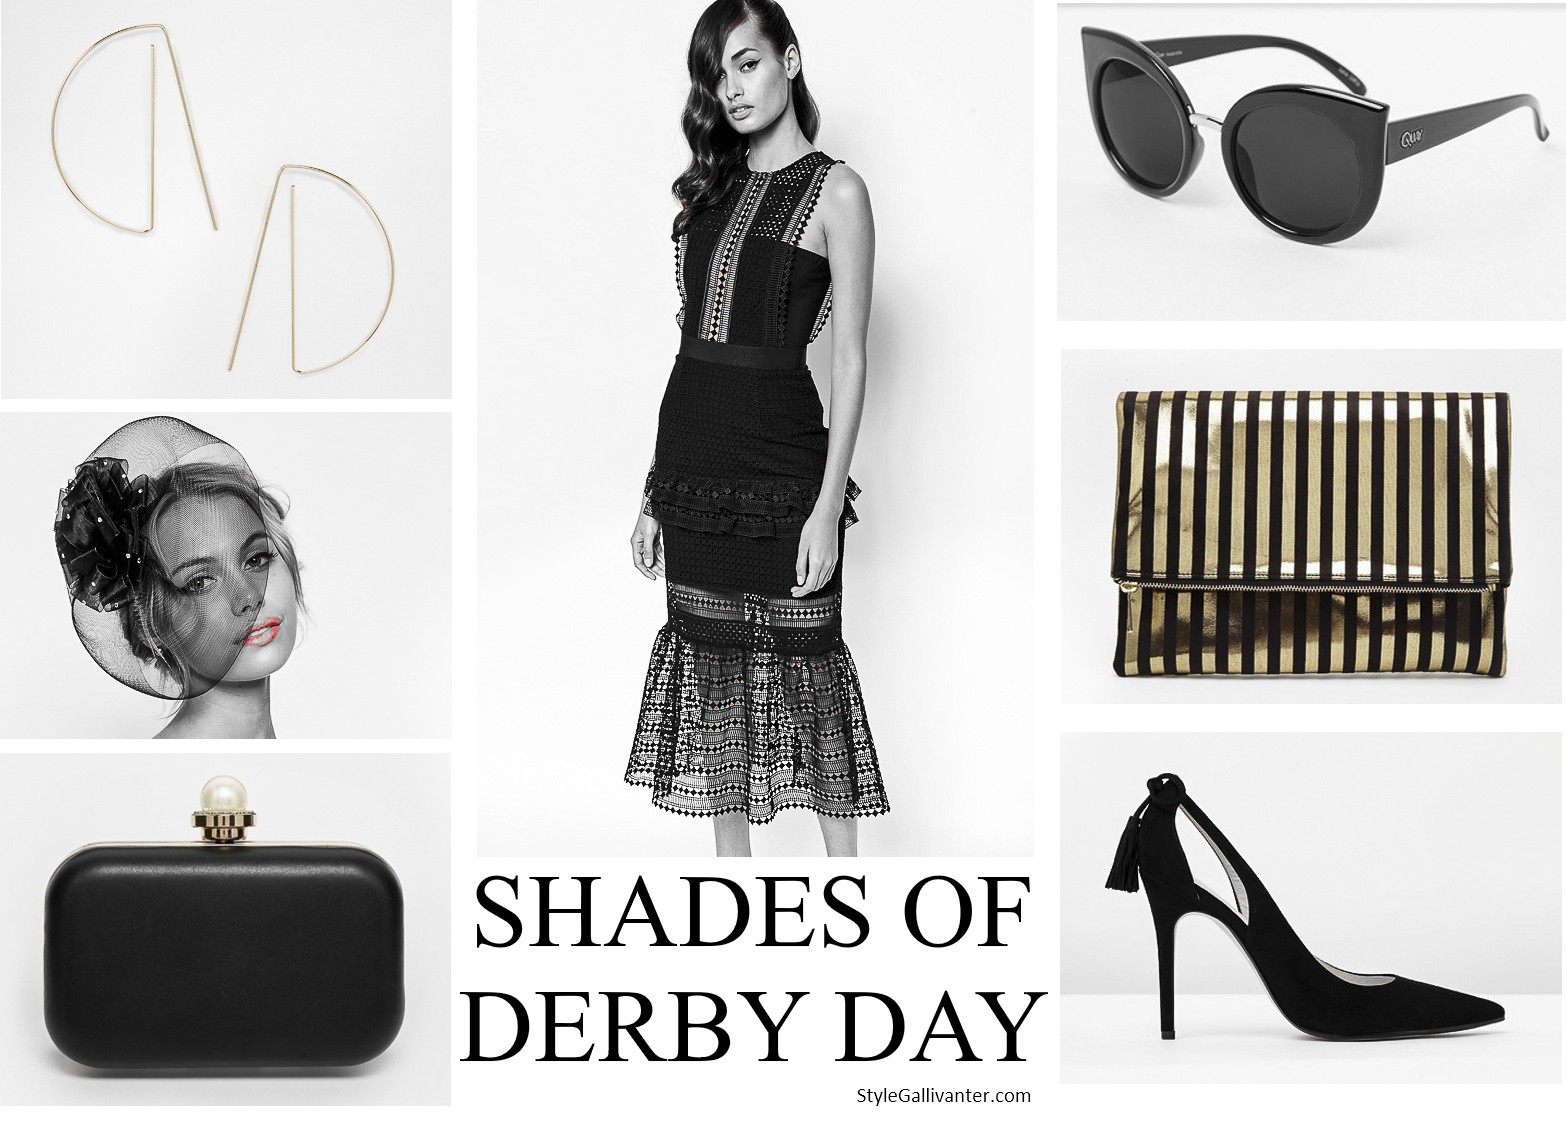 DERBY-DAY-TRENDS-2015_DERBY-DAY-STYLE_MELBOURNE-CUP-BEST-DRESSED-2015_STYLEGALLIVANTER.COM_melbourne-3